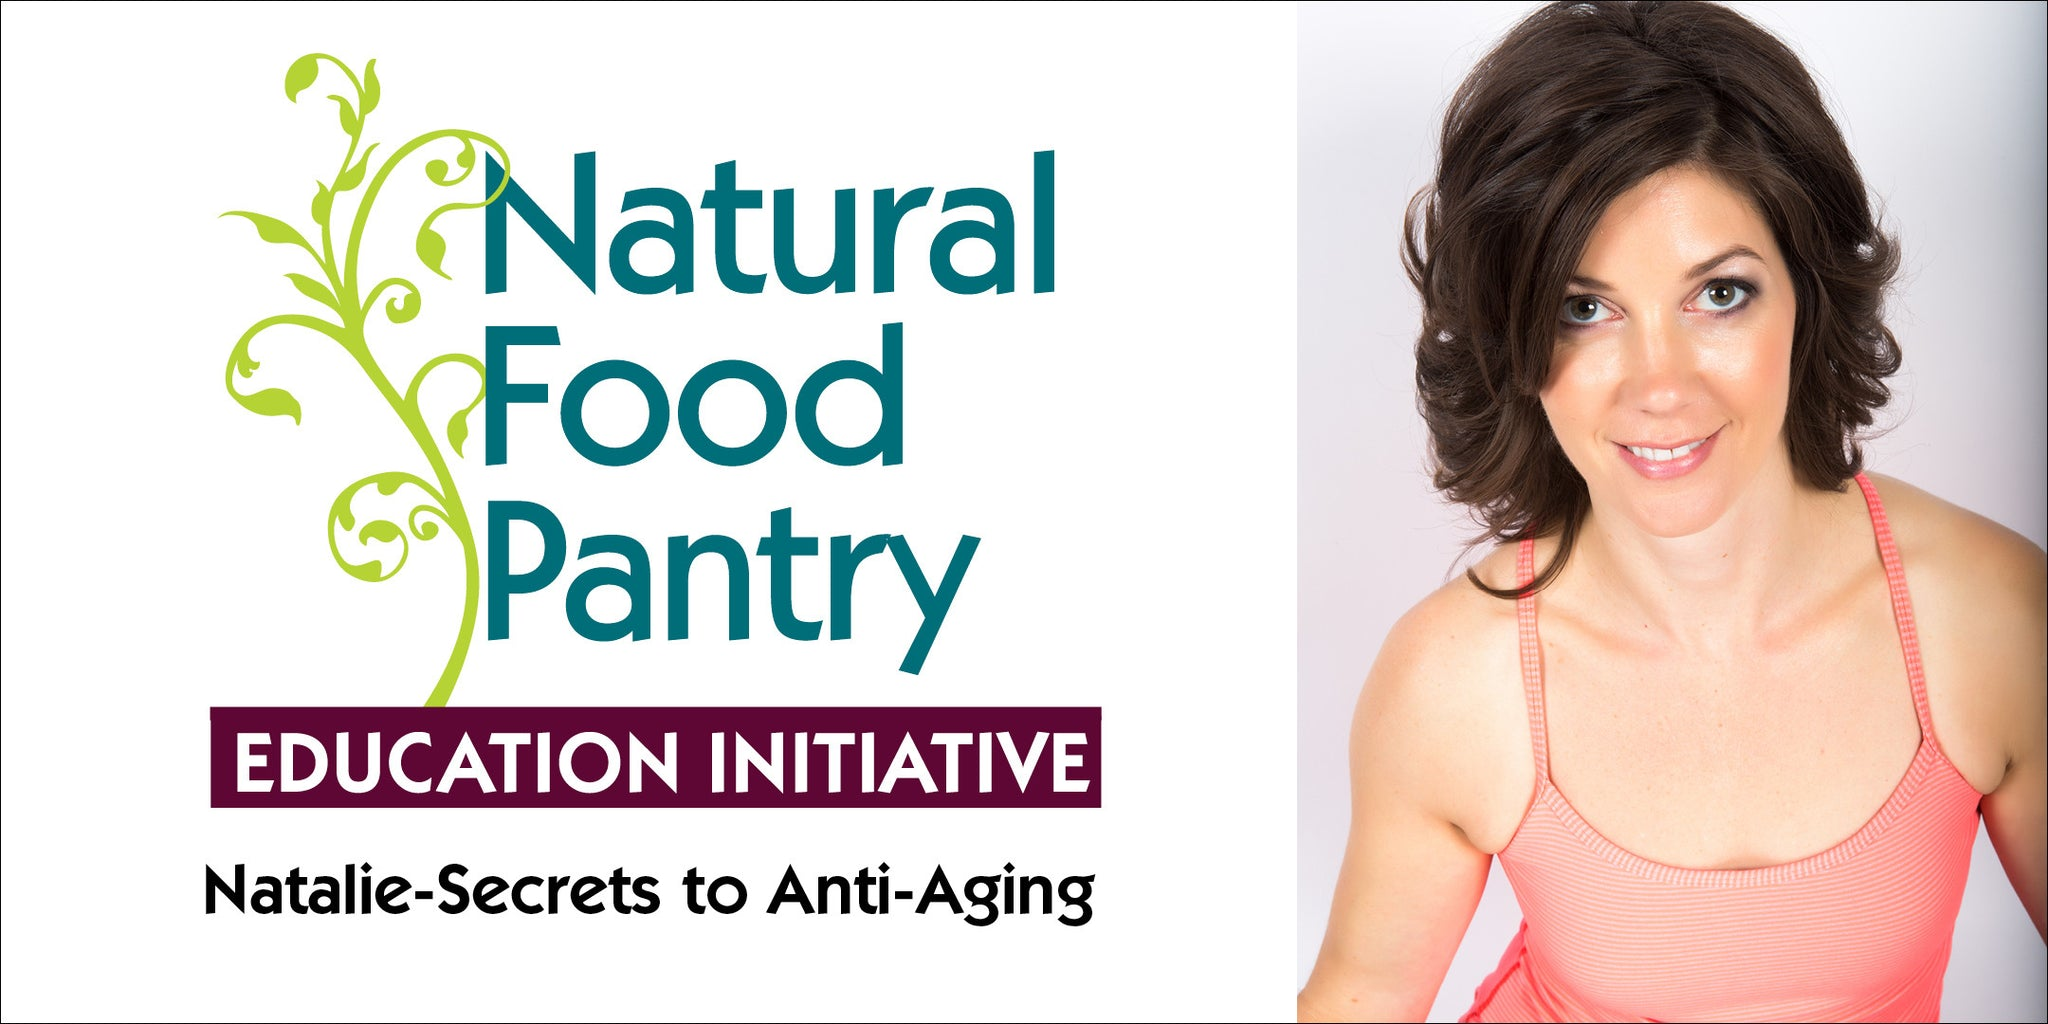 JULY 25 & 27: THE SECRETS TO ANTI-AGING